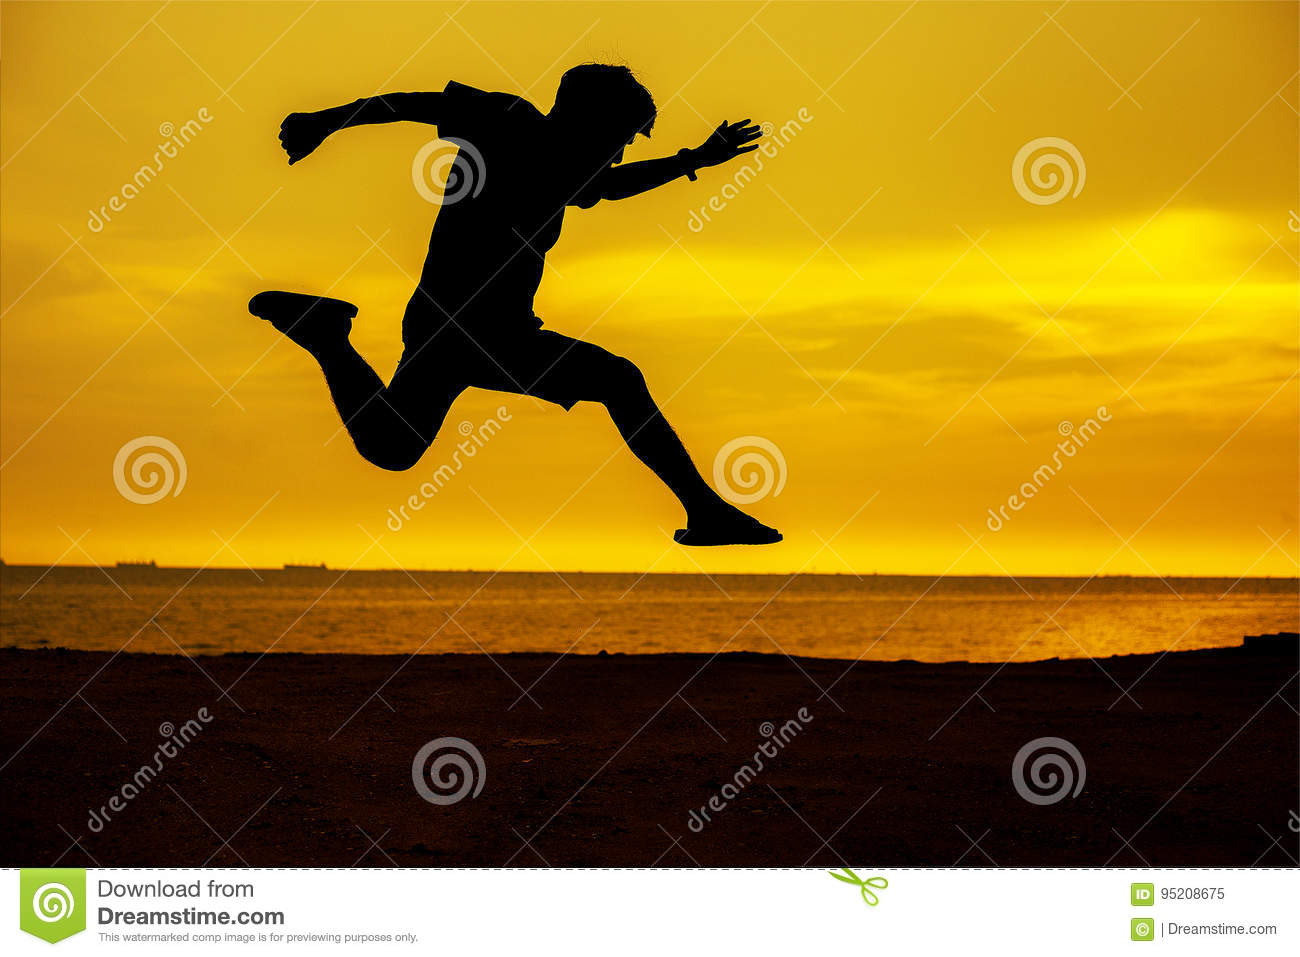 young man jump over the sun and through on the gap of hill silhouette evening colorful sky.